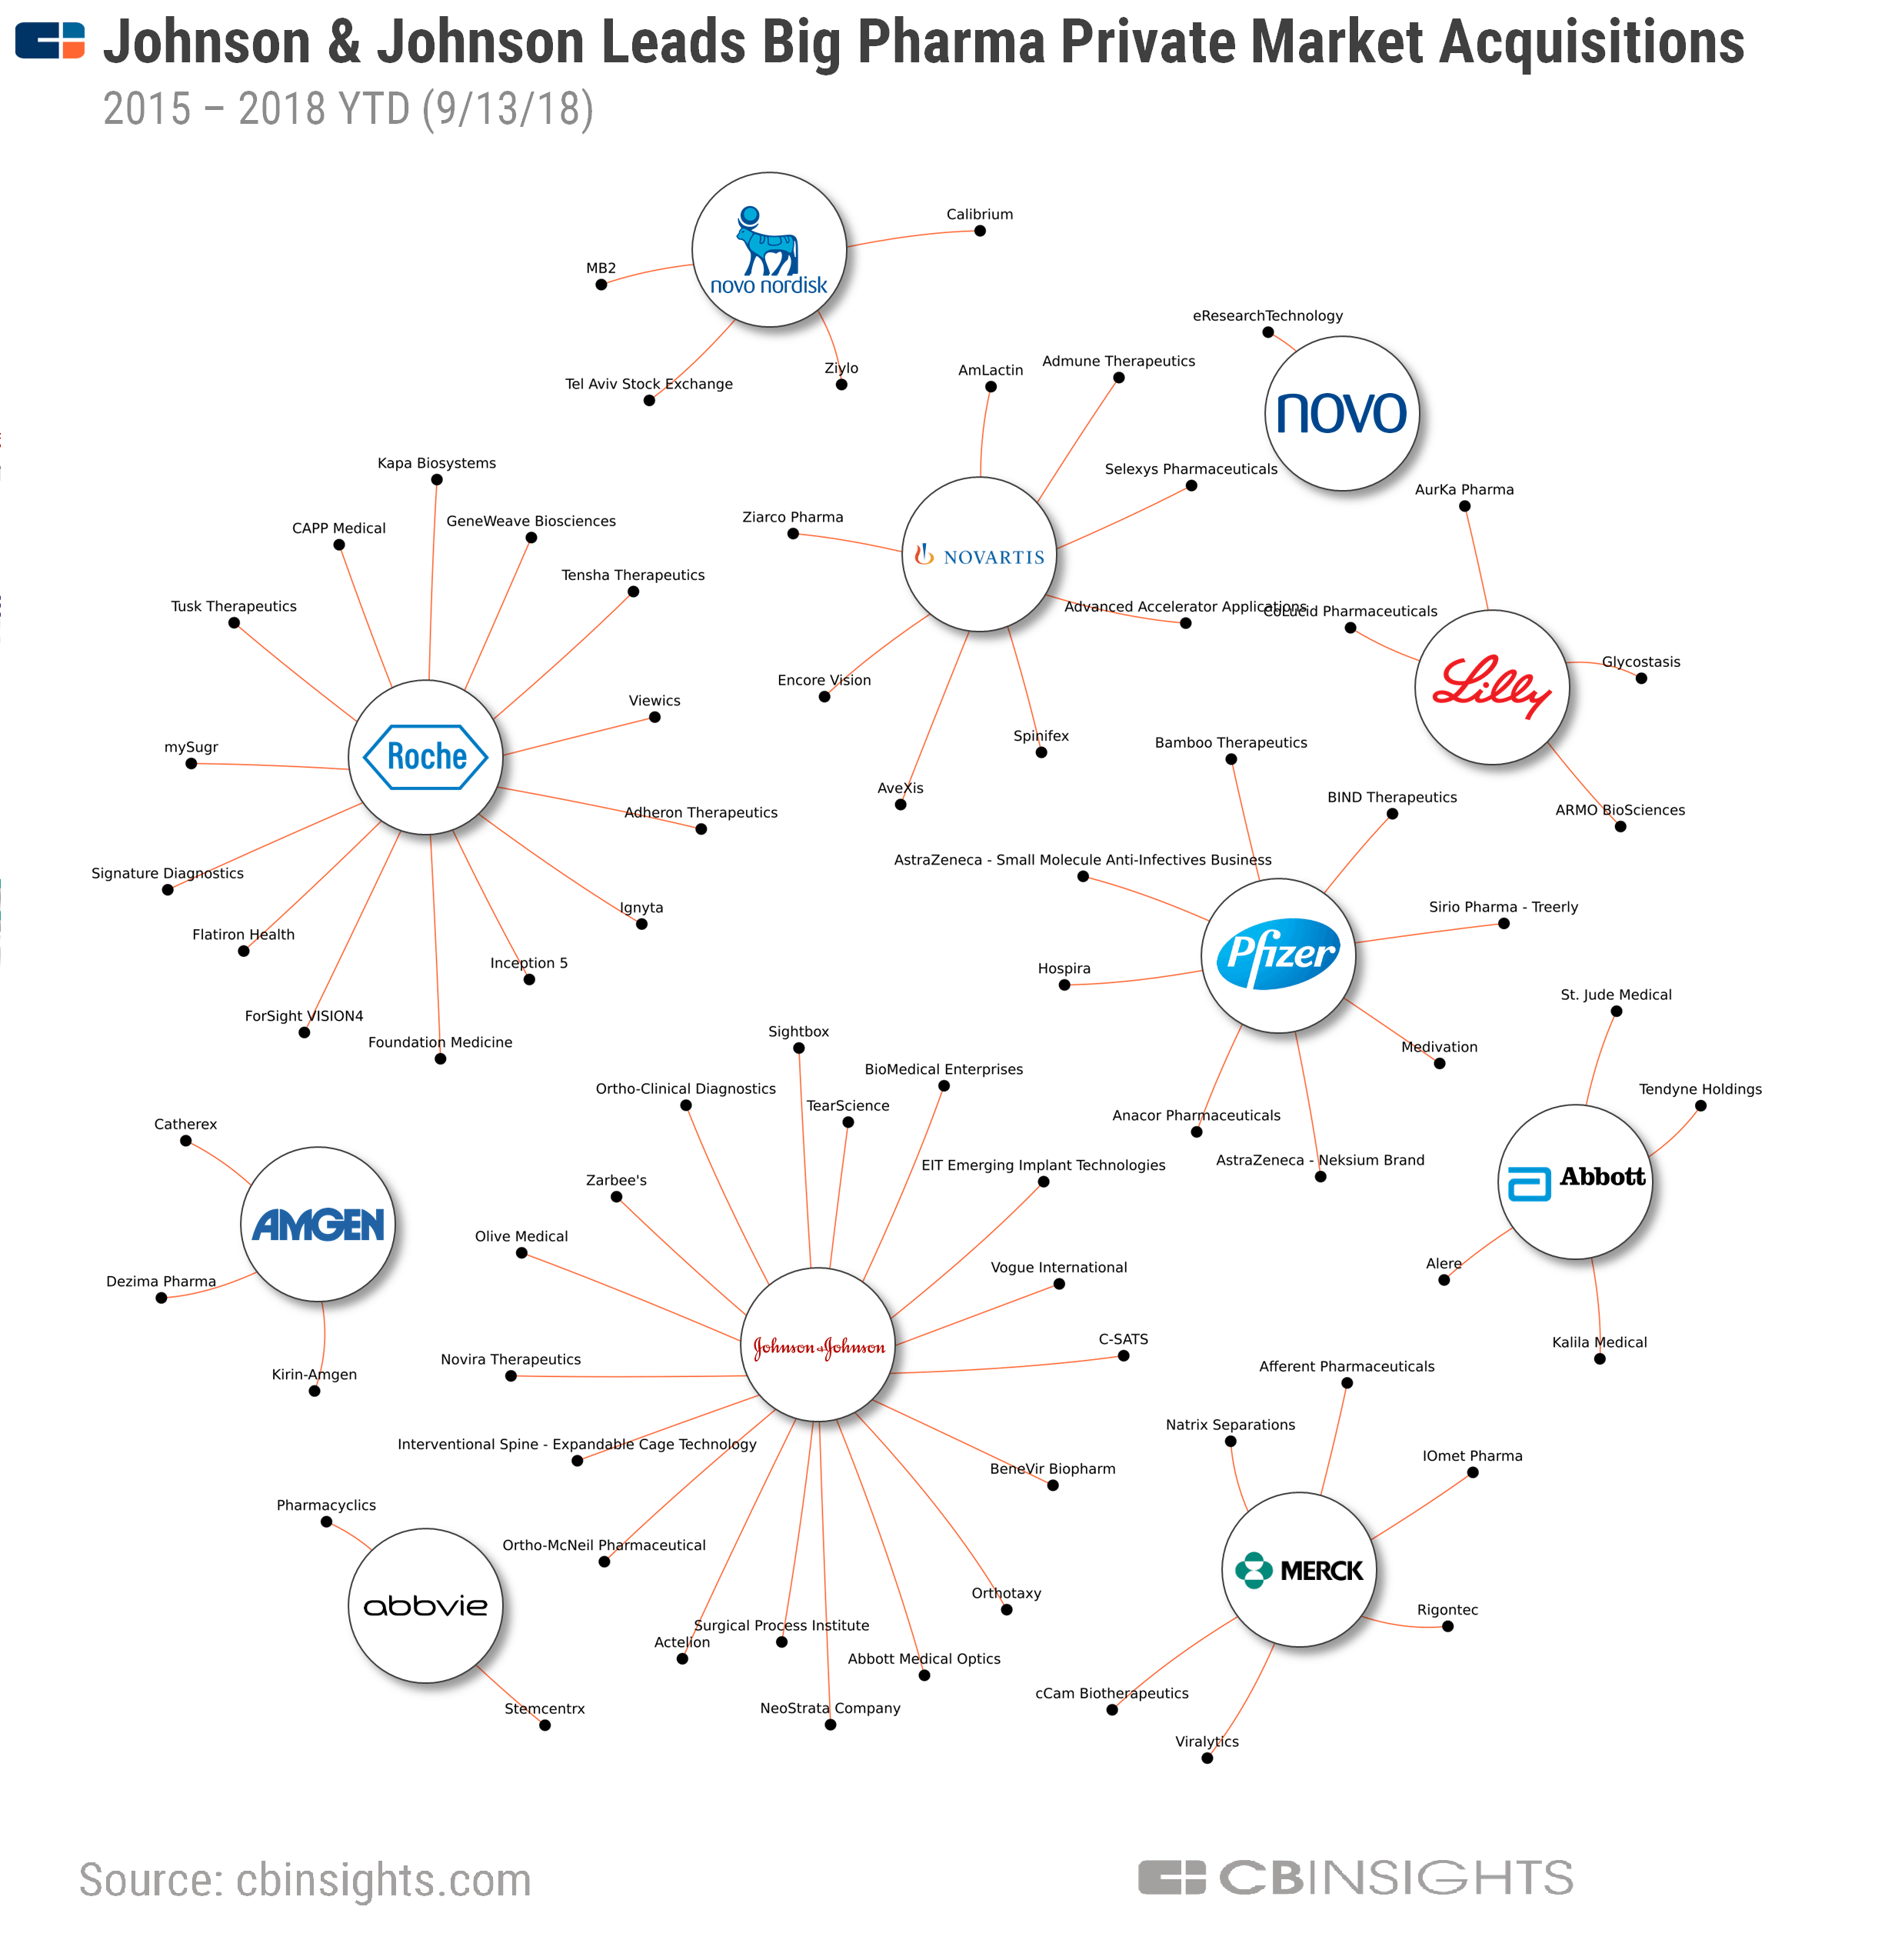 Of The Corporates Listed Johnson Is Most Acquisitive Company With 16 Deals Across Time Period Similar To Its Investment Strategy